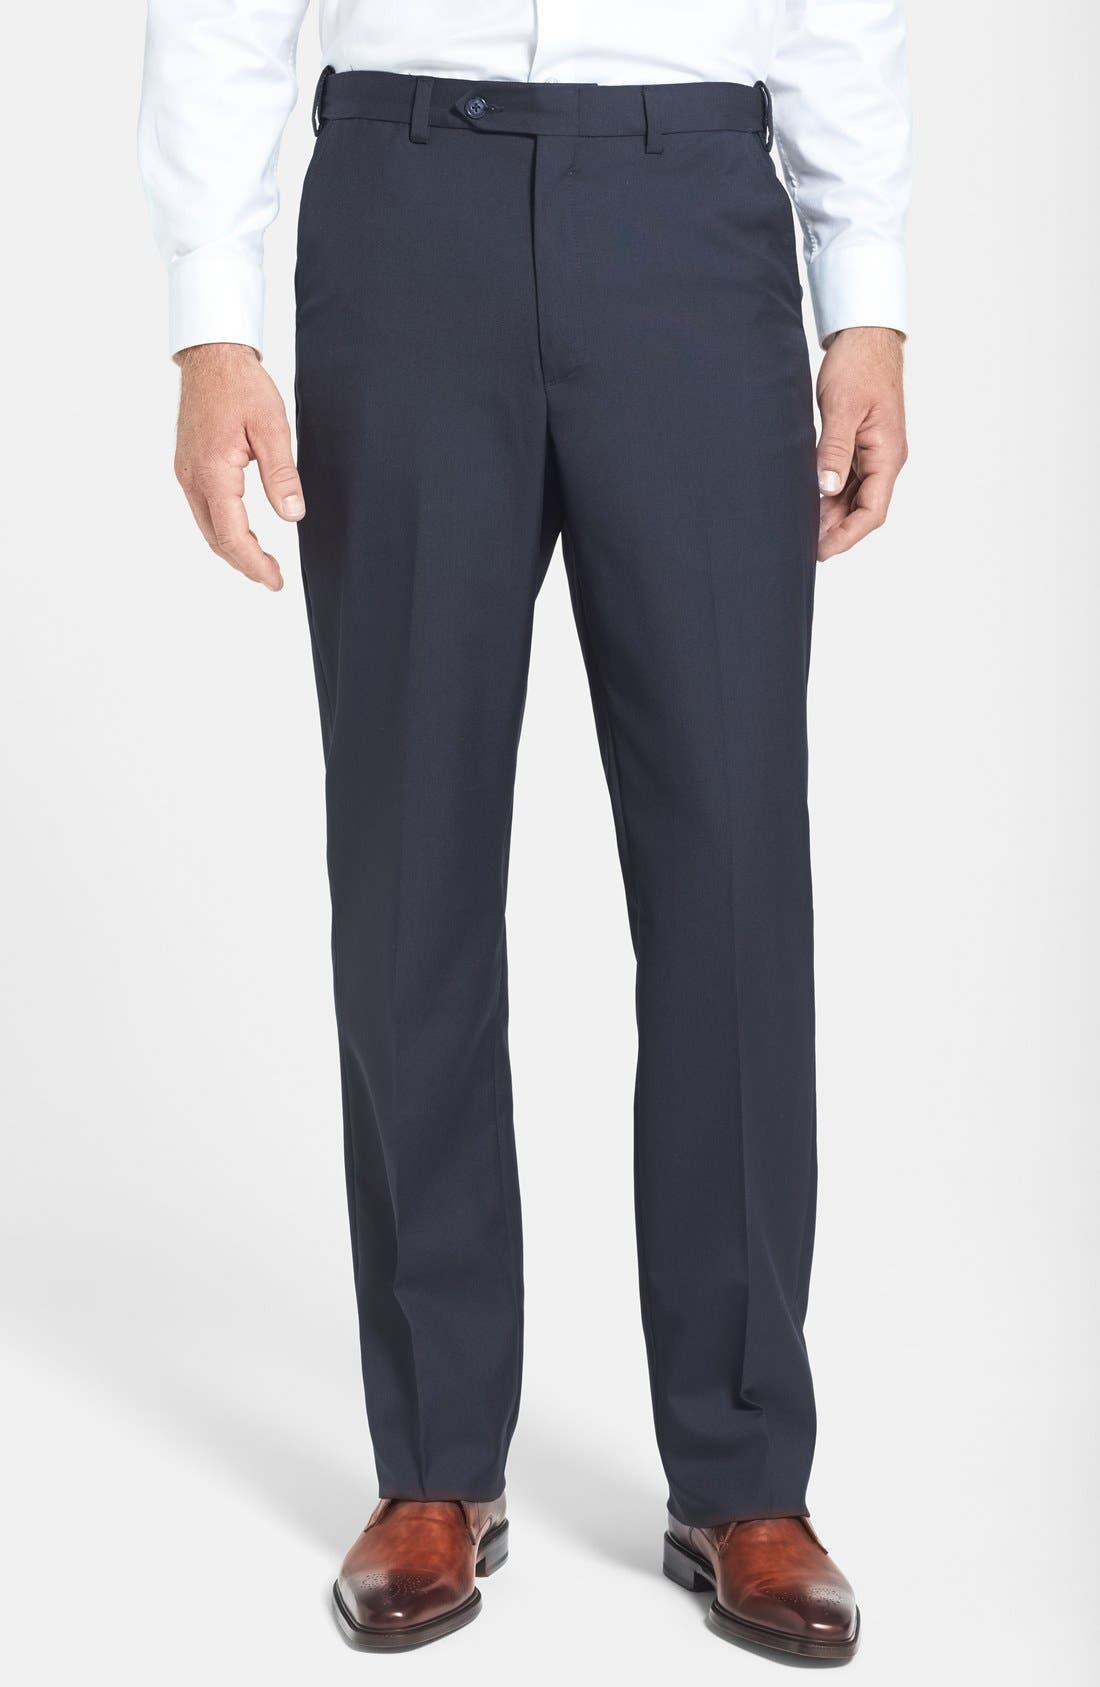 BERLE Self Sizer Waist Tropical Weight Flat Front Trousers, Main, color, NAVY